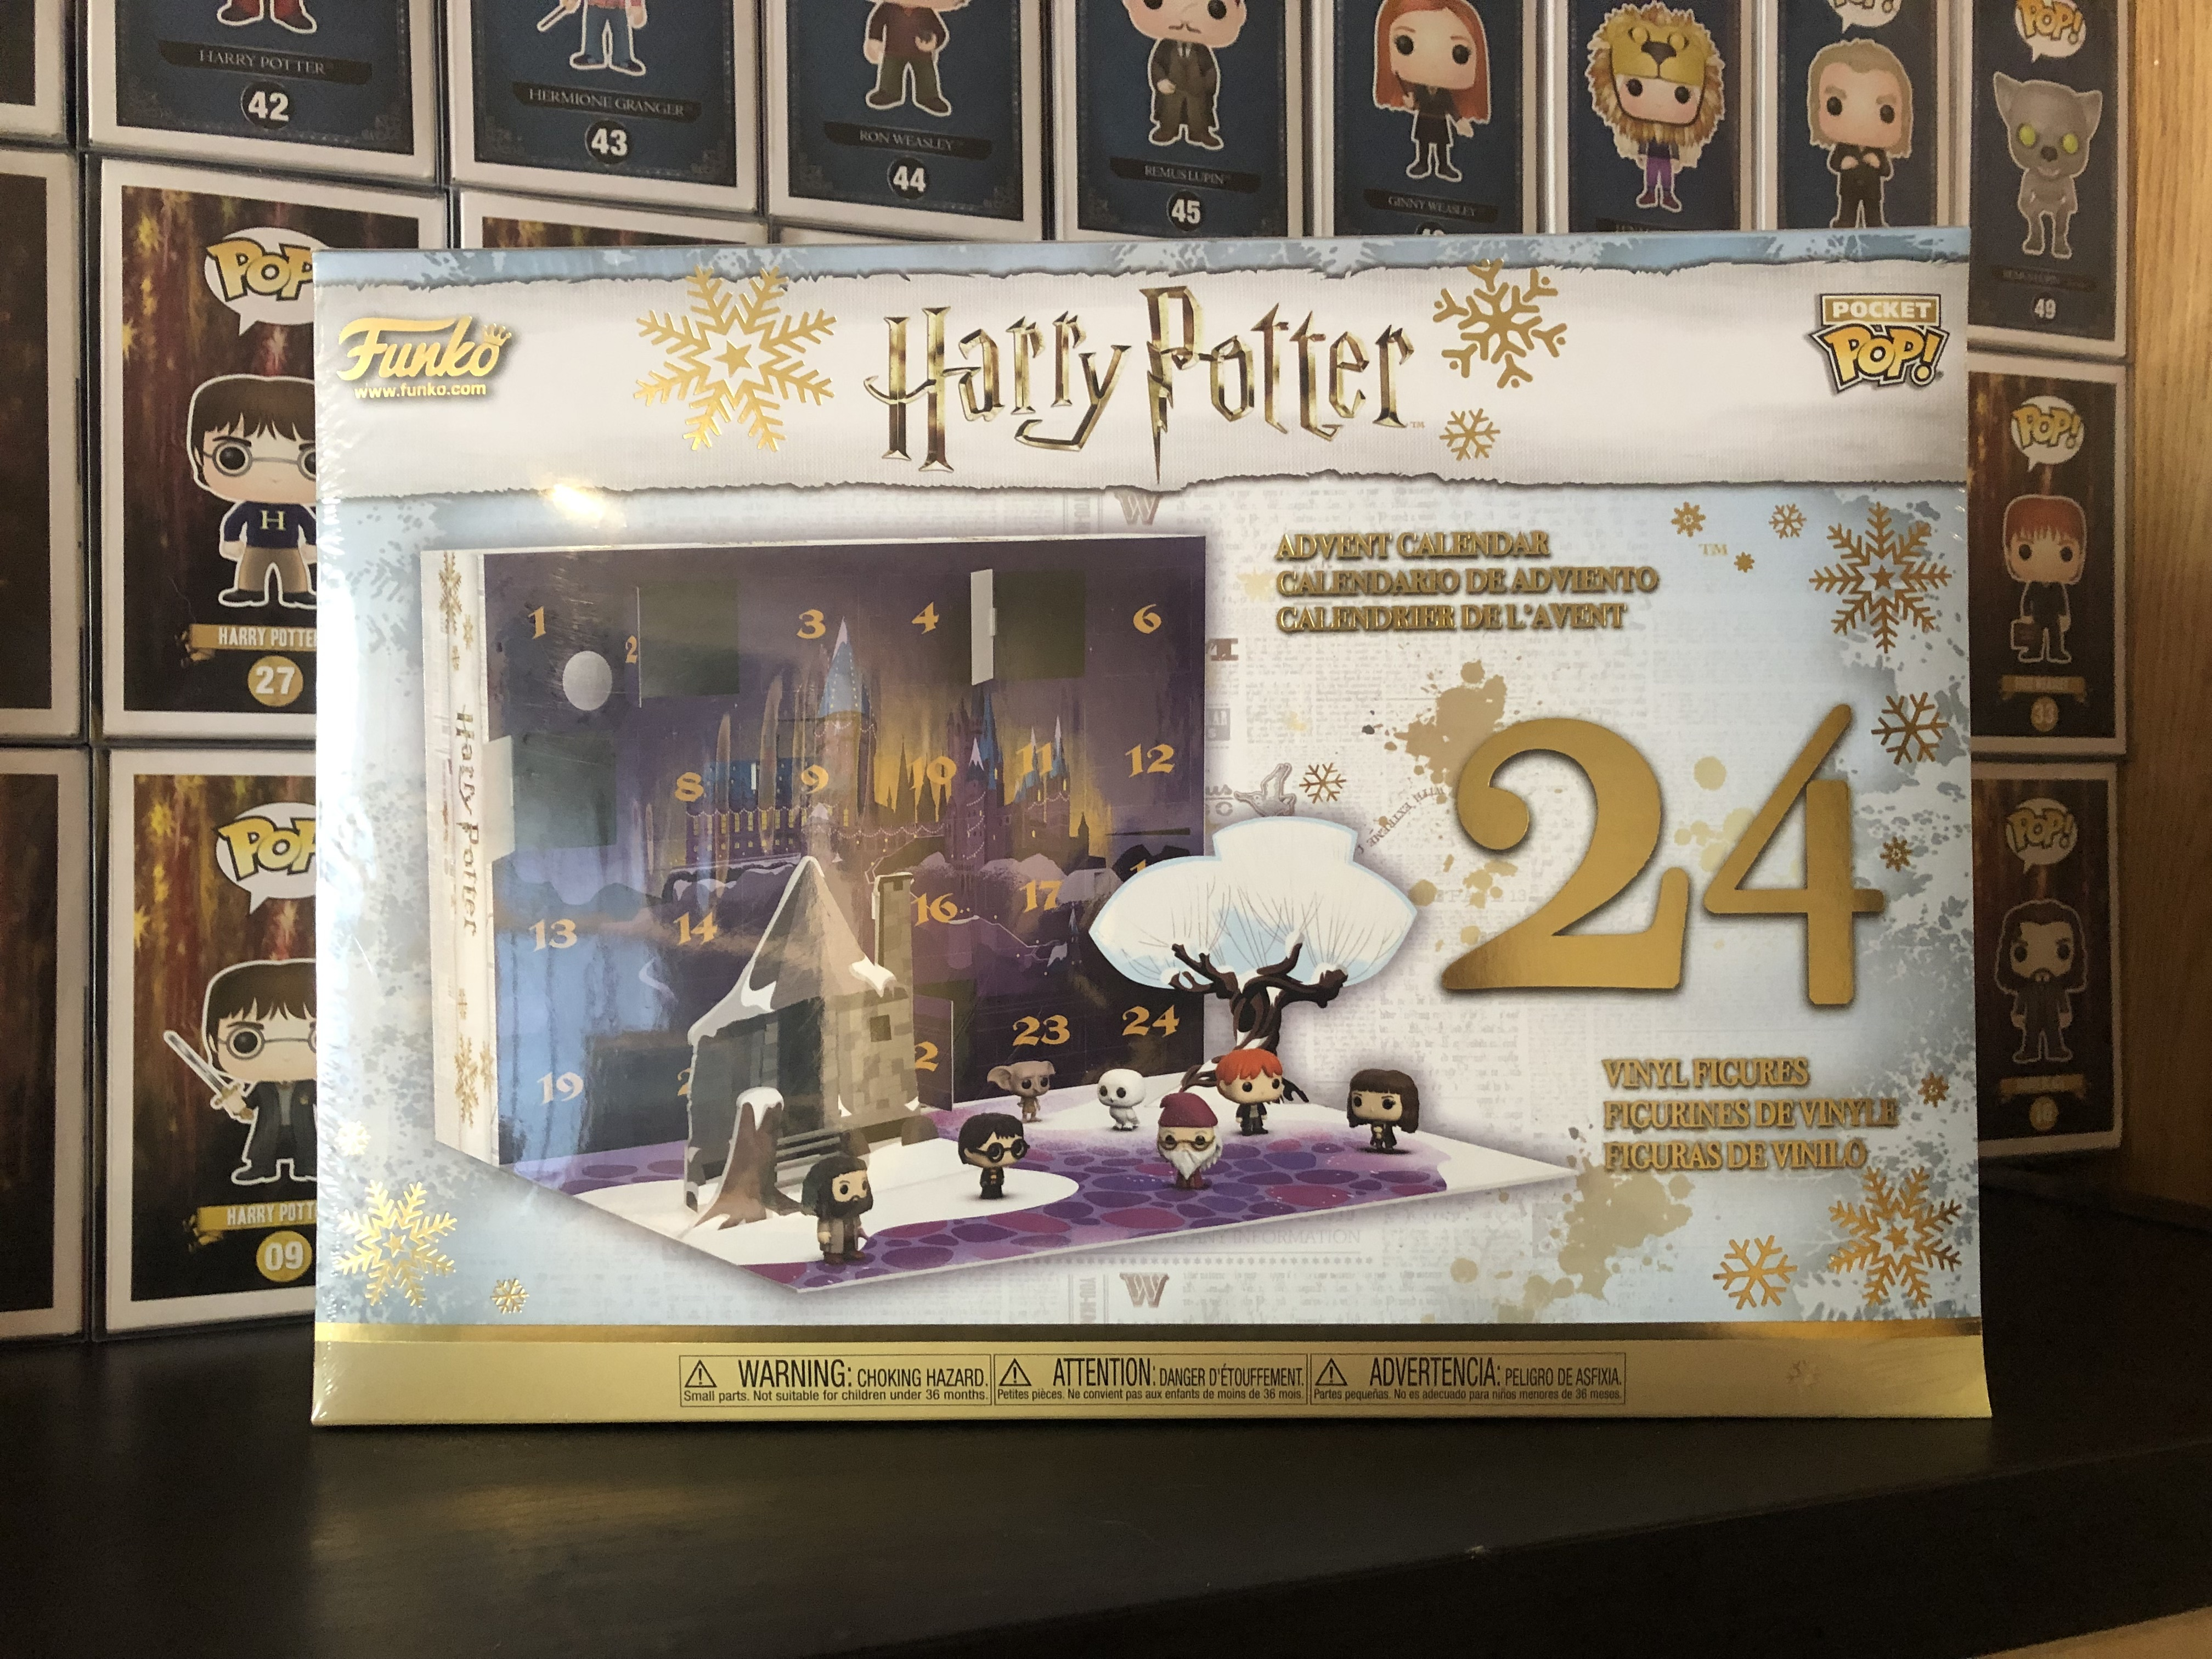 Harry Potter Advent Calendar.Harry Potter Advent Calendar Hobbydb